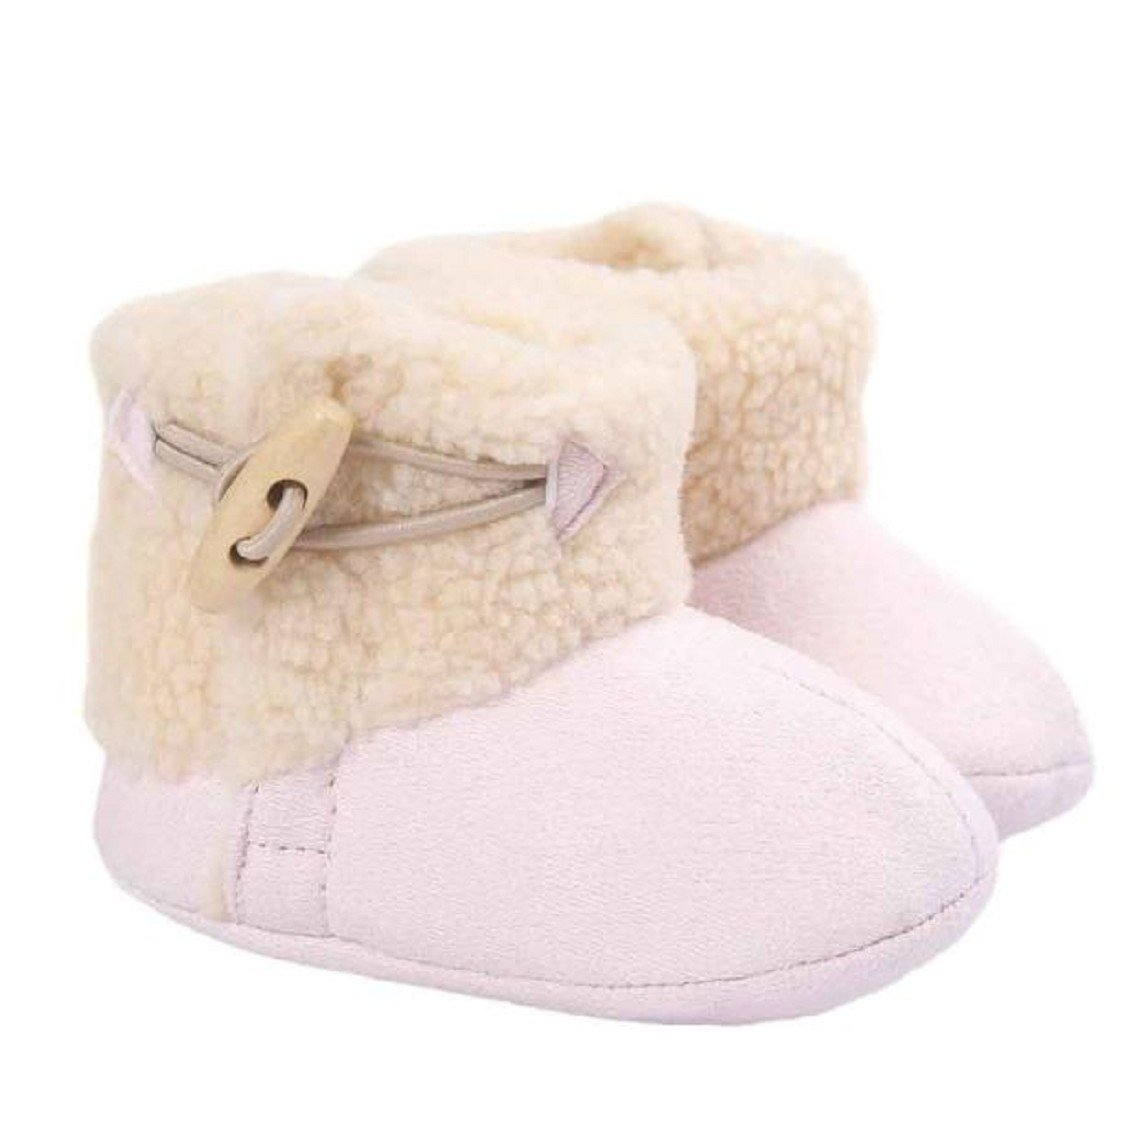 Egmy Baby Shoes Baby Keep Warm Soft Sole Snow Boots Soft Crib Shoes Toddler Boots